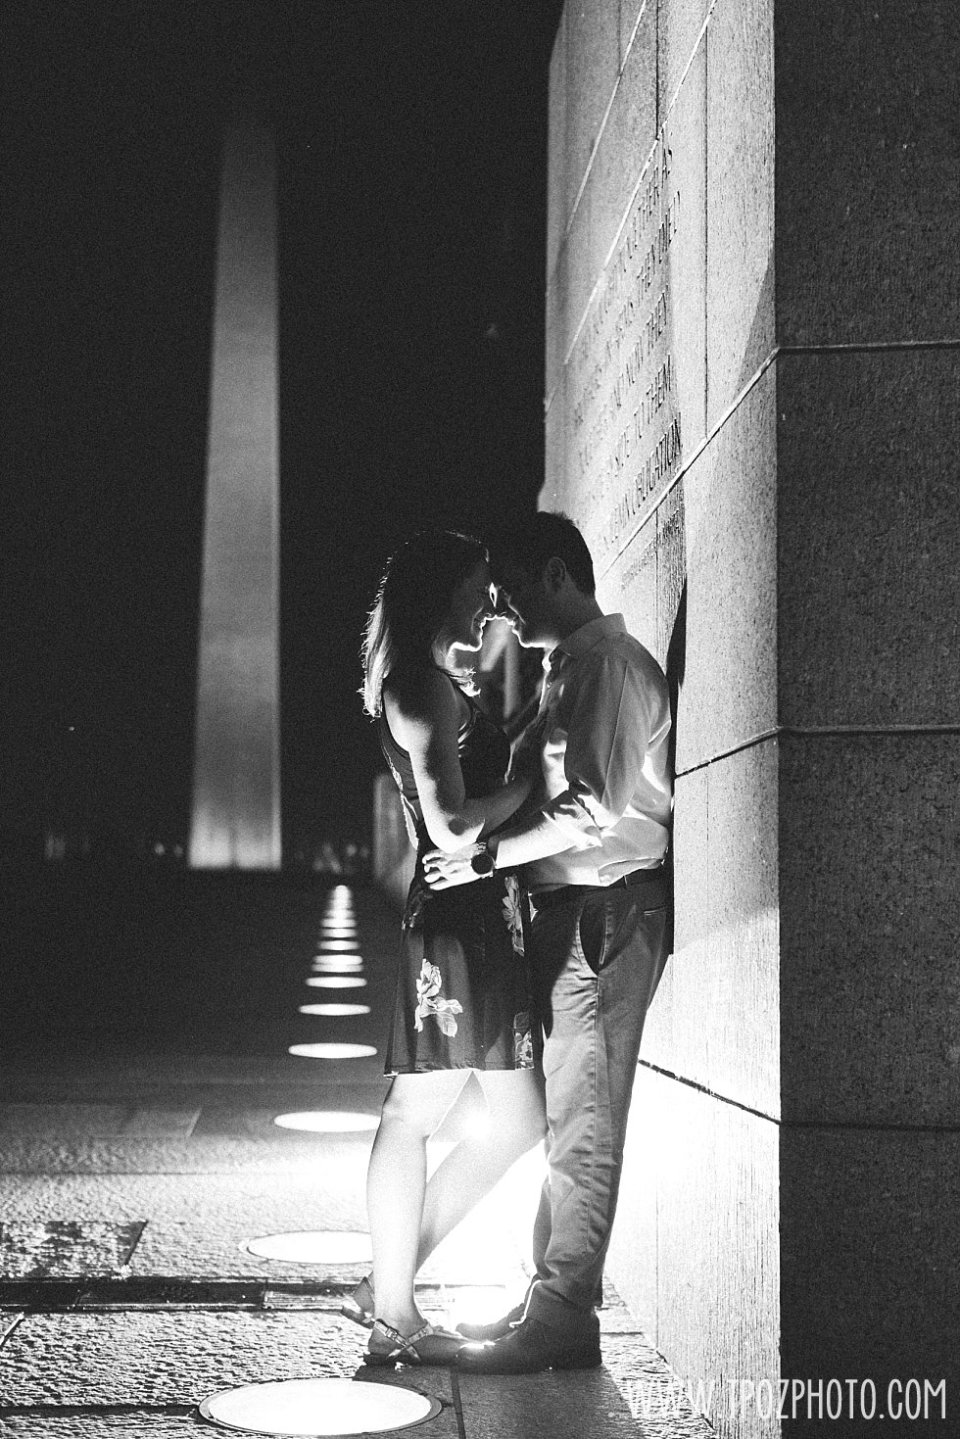 World War II Memorial Engagement Session • tPoz Photography  •  www.tpozphoto.com